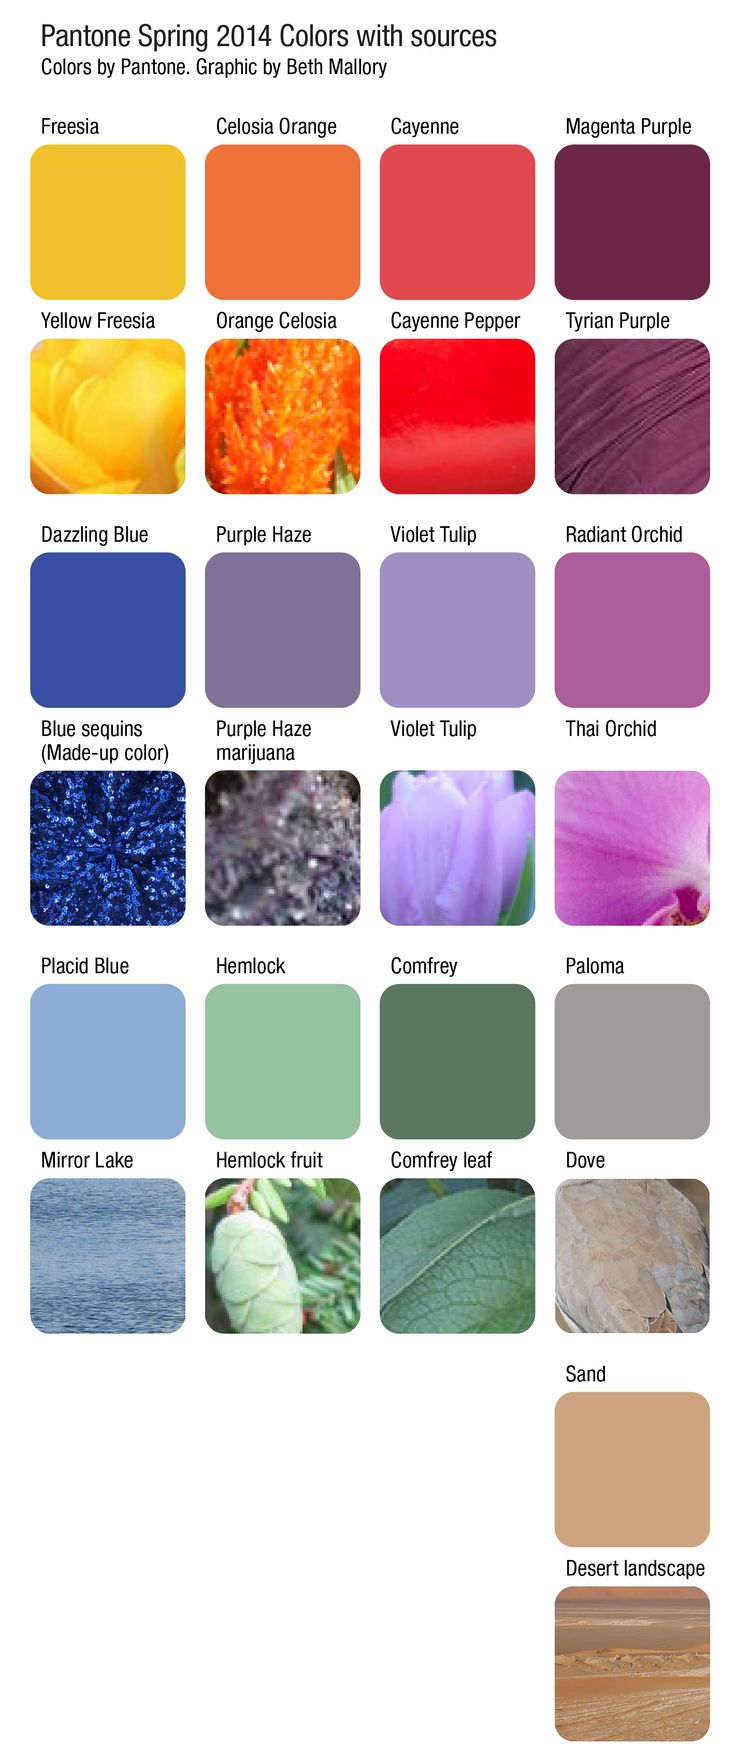 Design Color Trends 2014 103 best color trends images on pinterest colors palettes pantone spring 2014 with sources from photos